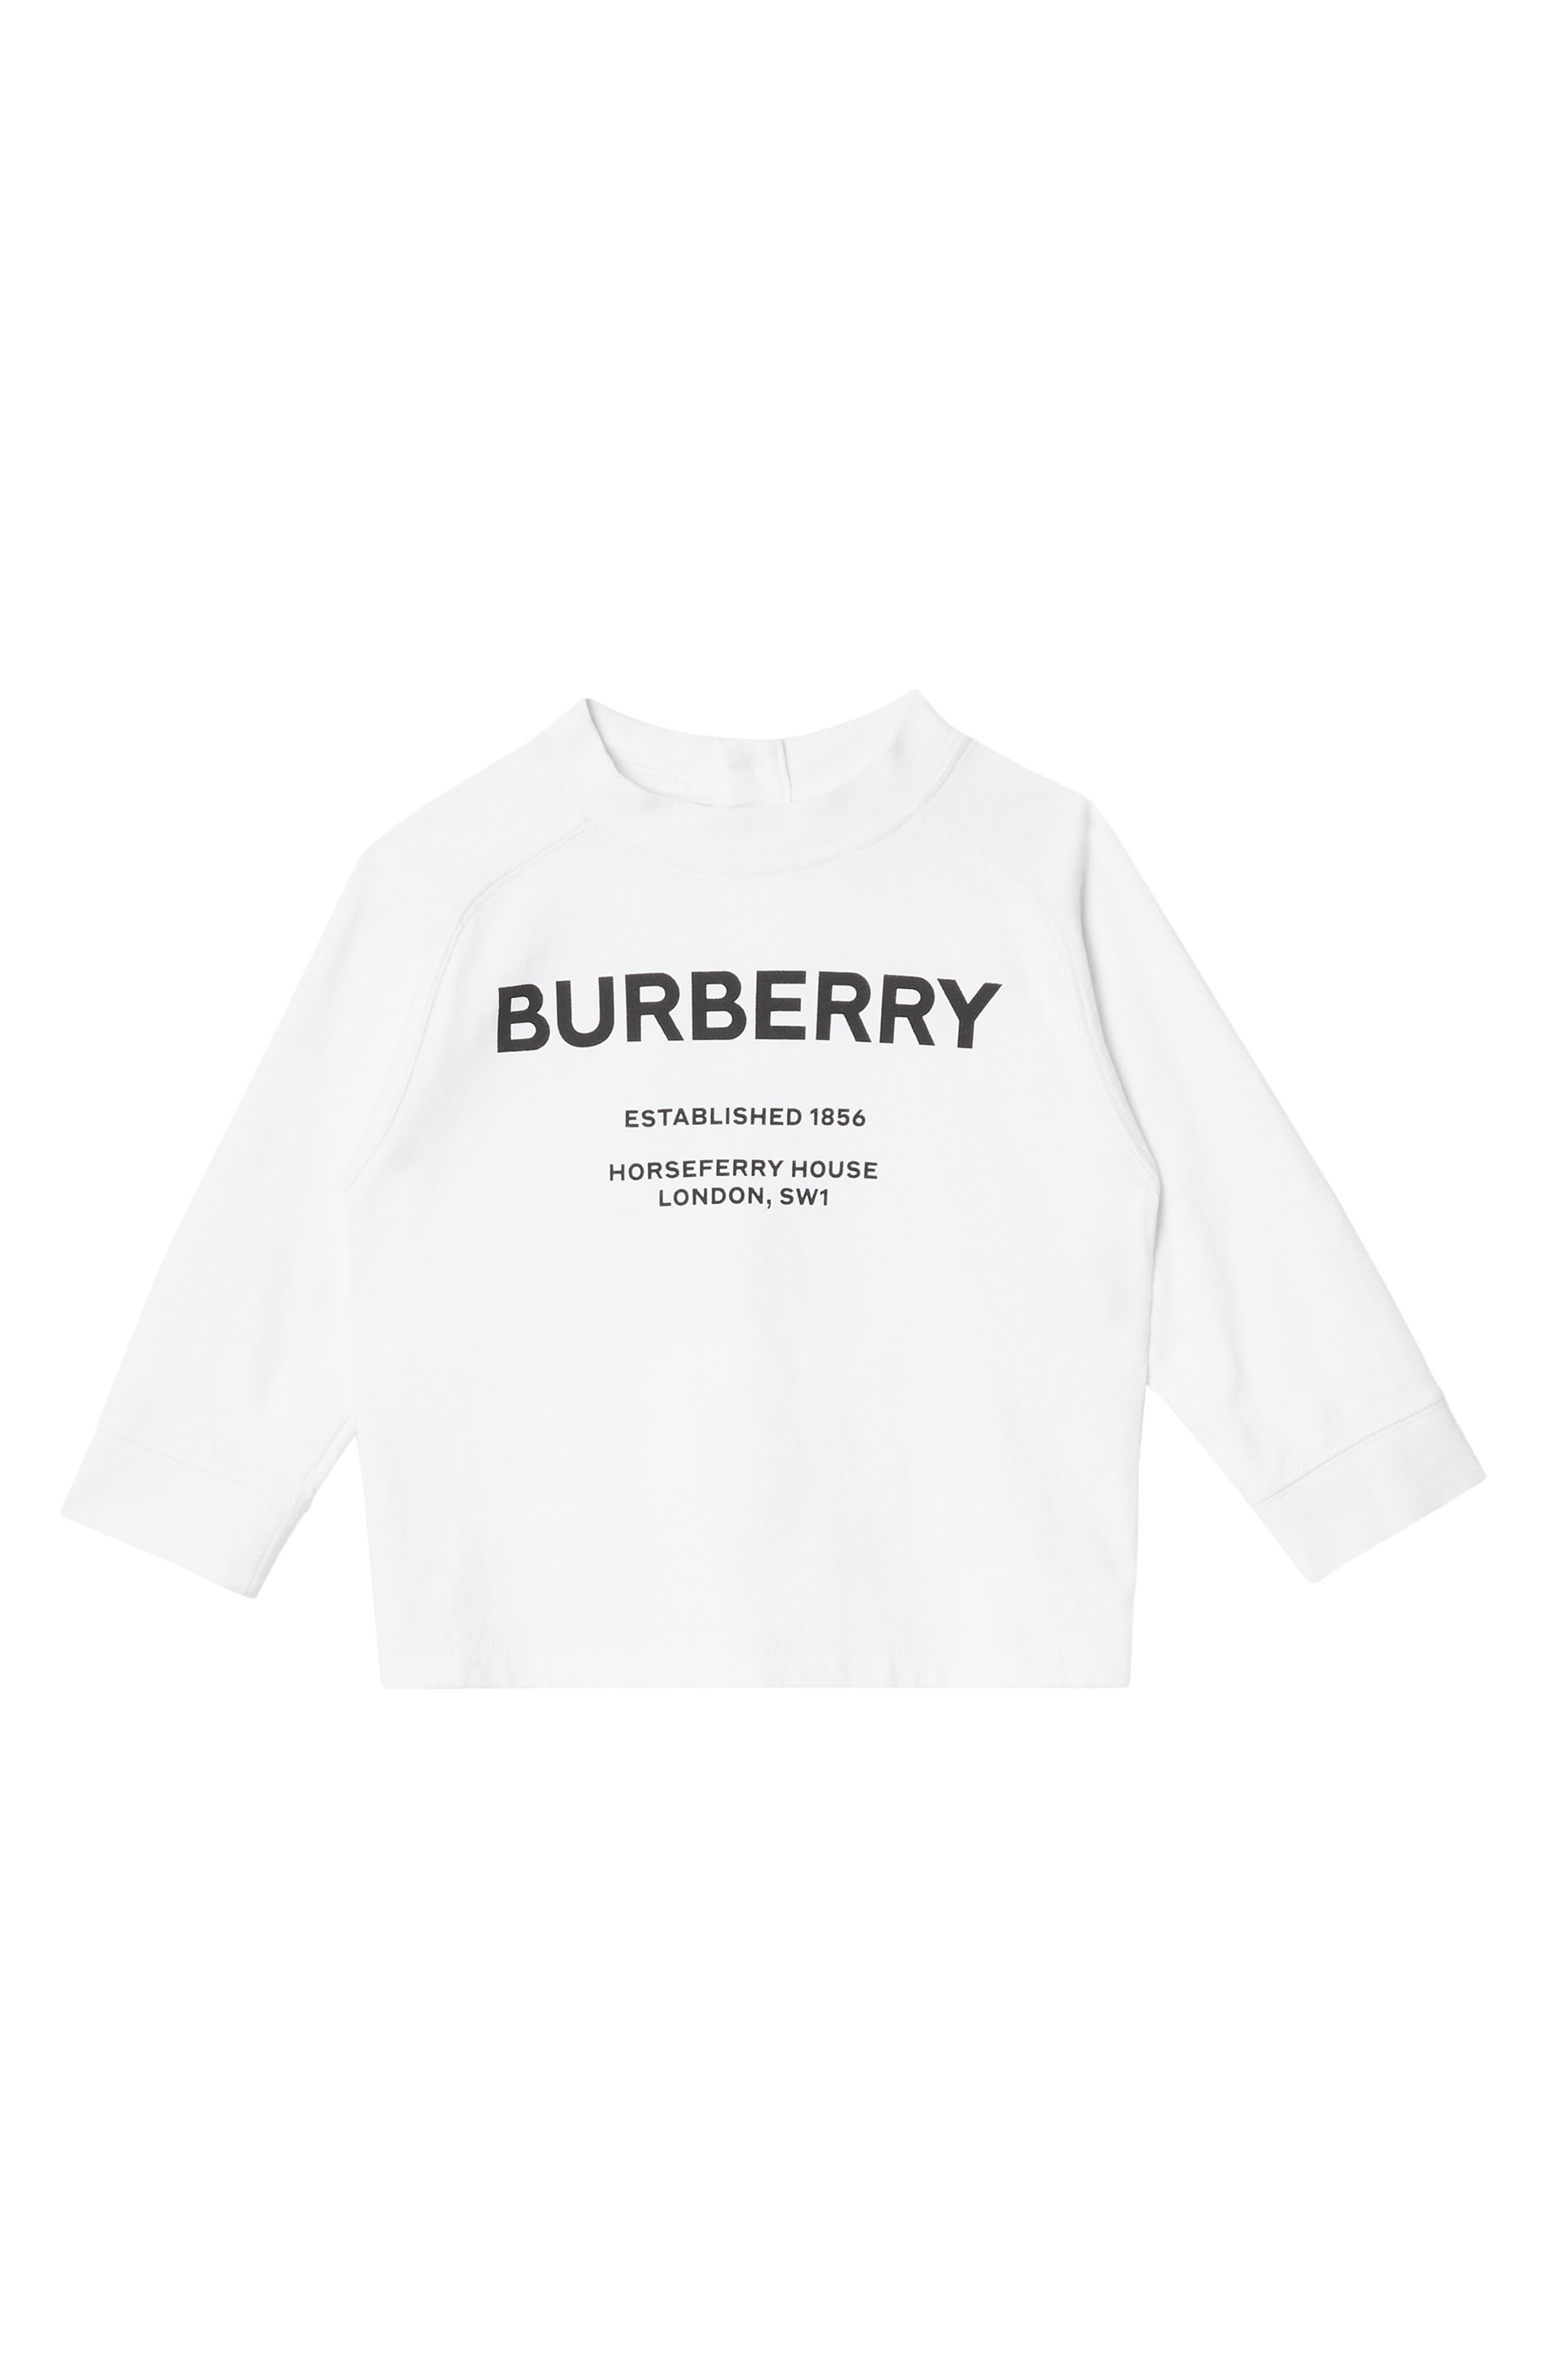 Toddler Boys Burberry Griffon Graphic TShirt Size 2Y  White